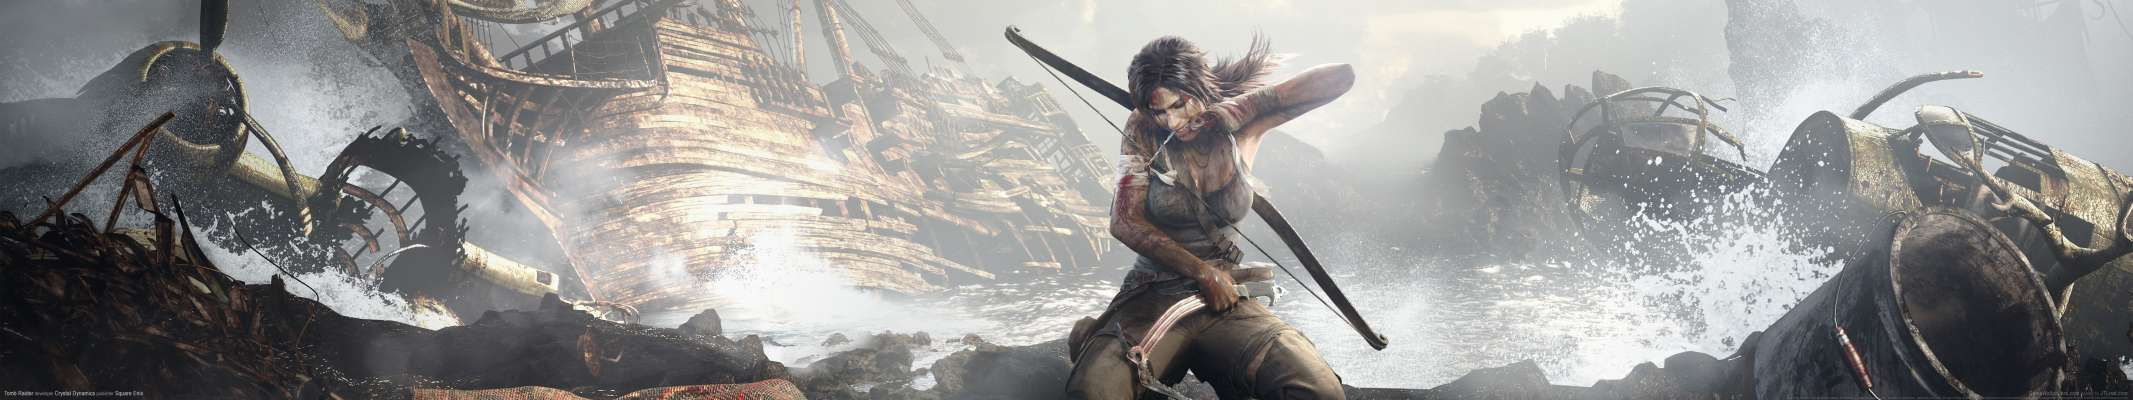 Tomb Raider triple screen wallpaper or background